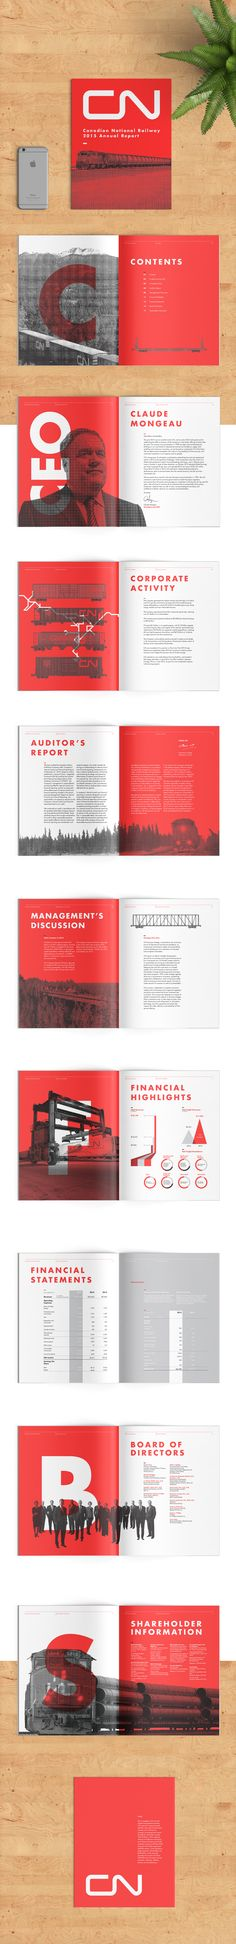 Nice harmony of graphics, layout and colour and text considerations. CN Annual Report on Behance Layout Design, Design Corporativo, Design De Configuration, Print Layout, Book Design, Page Design, Print Design, Design Brochure, Brochure Layout